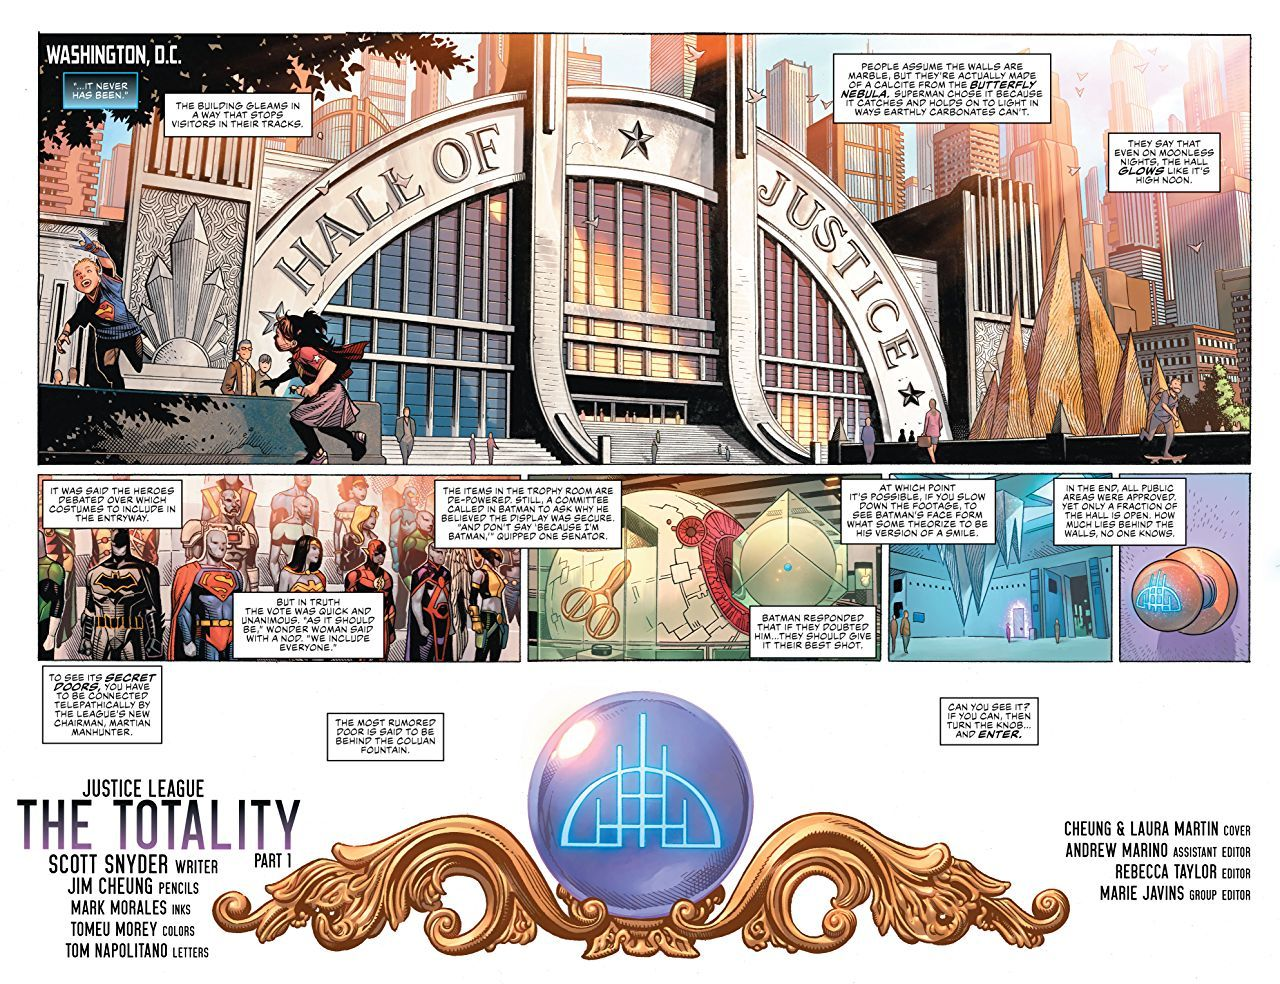 Justice League Vol. 1: The Totality-2 - 3